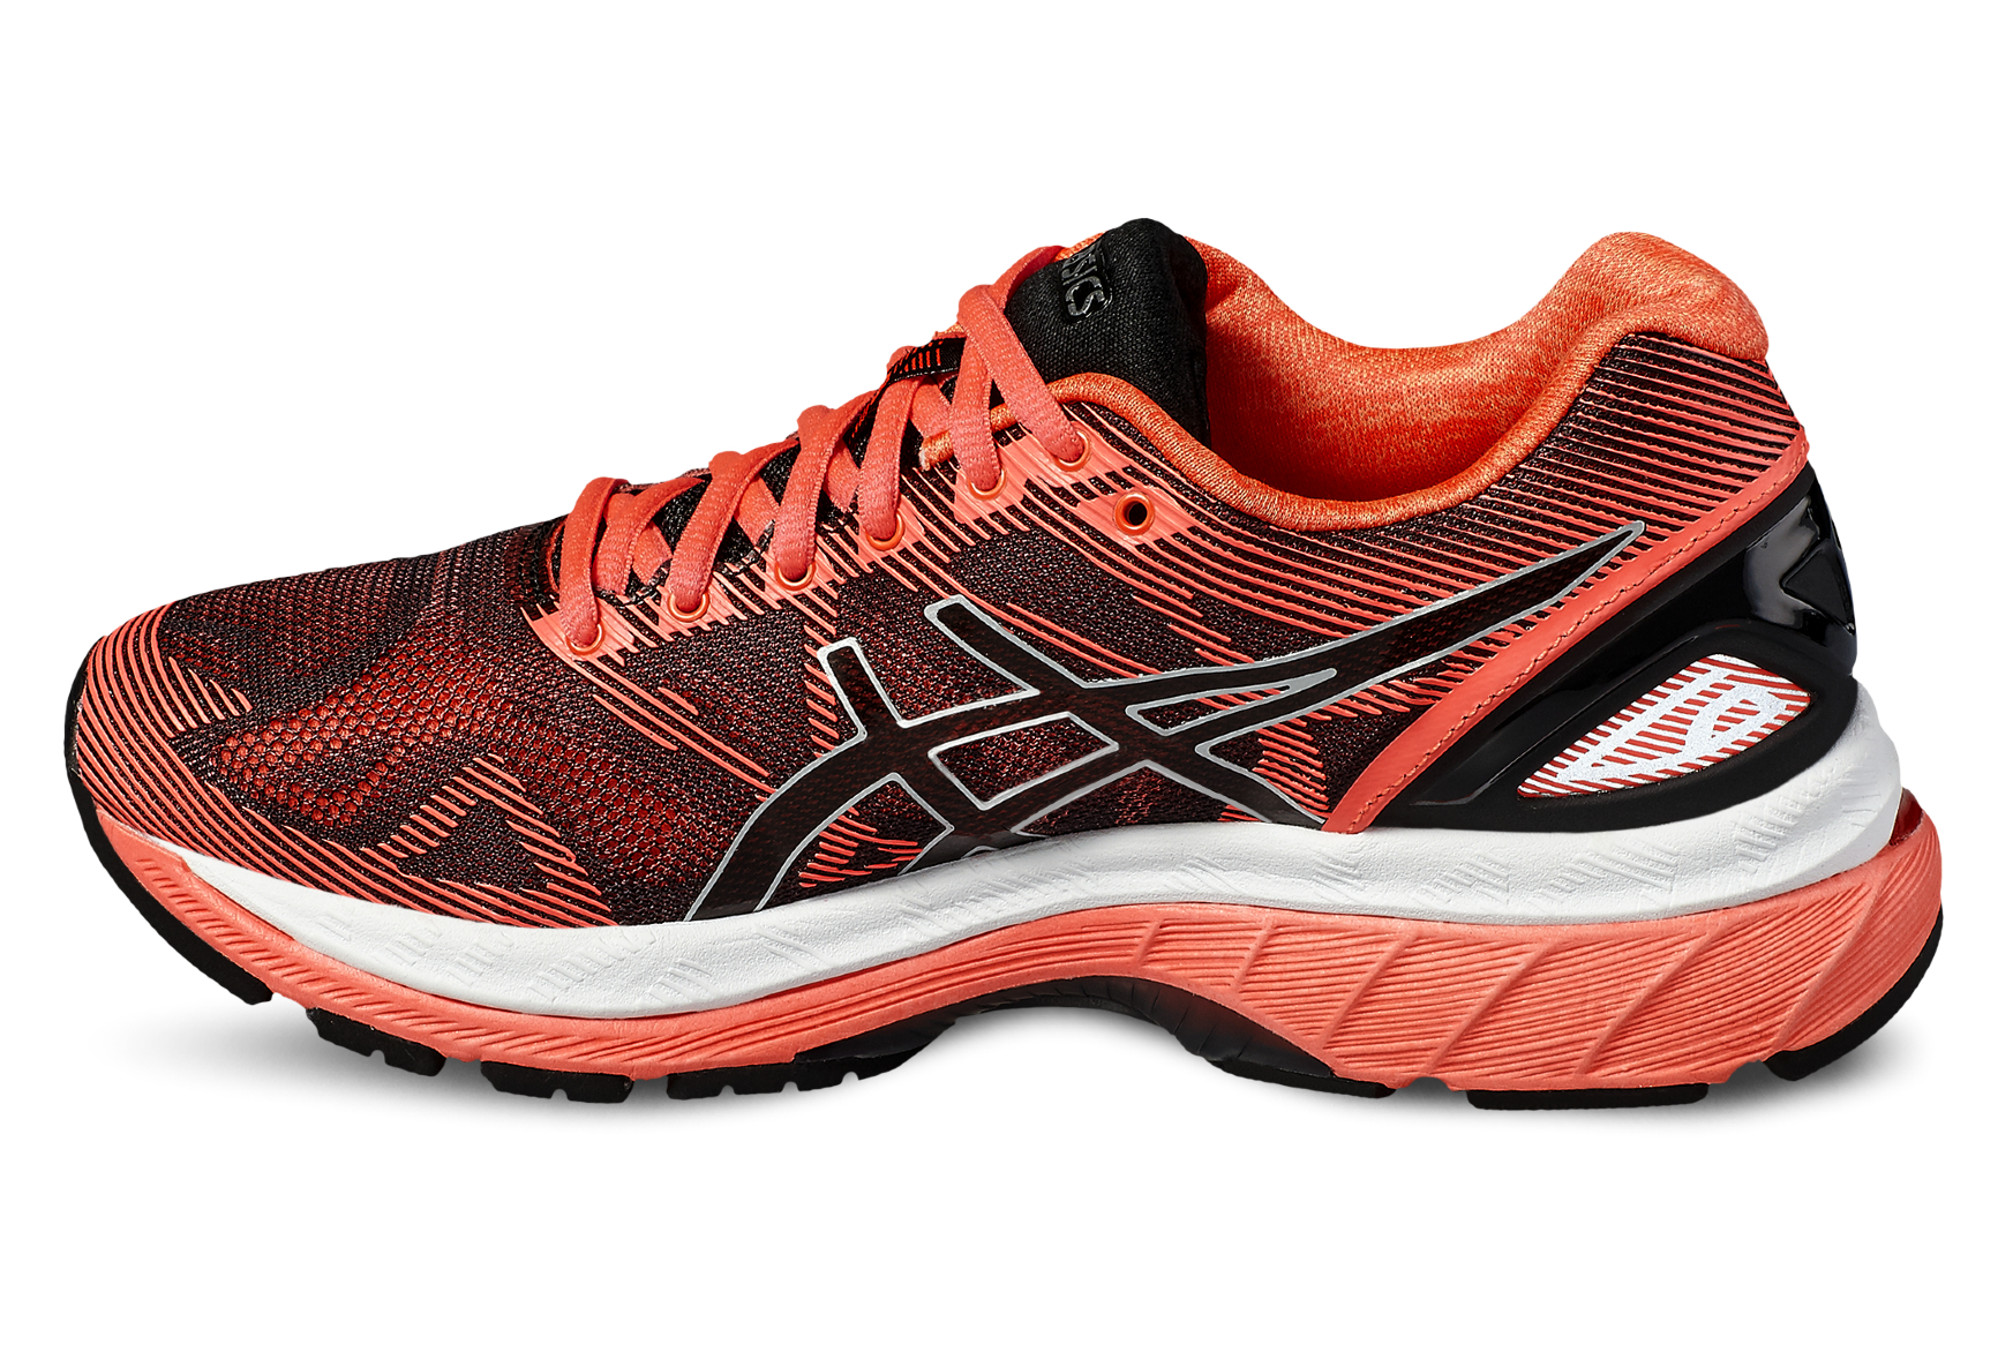 chaussures de running femme asics gel nimbus 19 orange. Black Bedroom Furniture Sets. Home Design Ideas